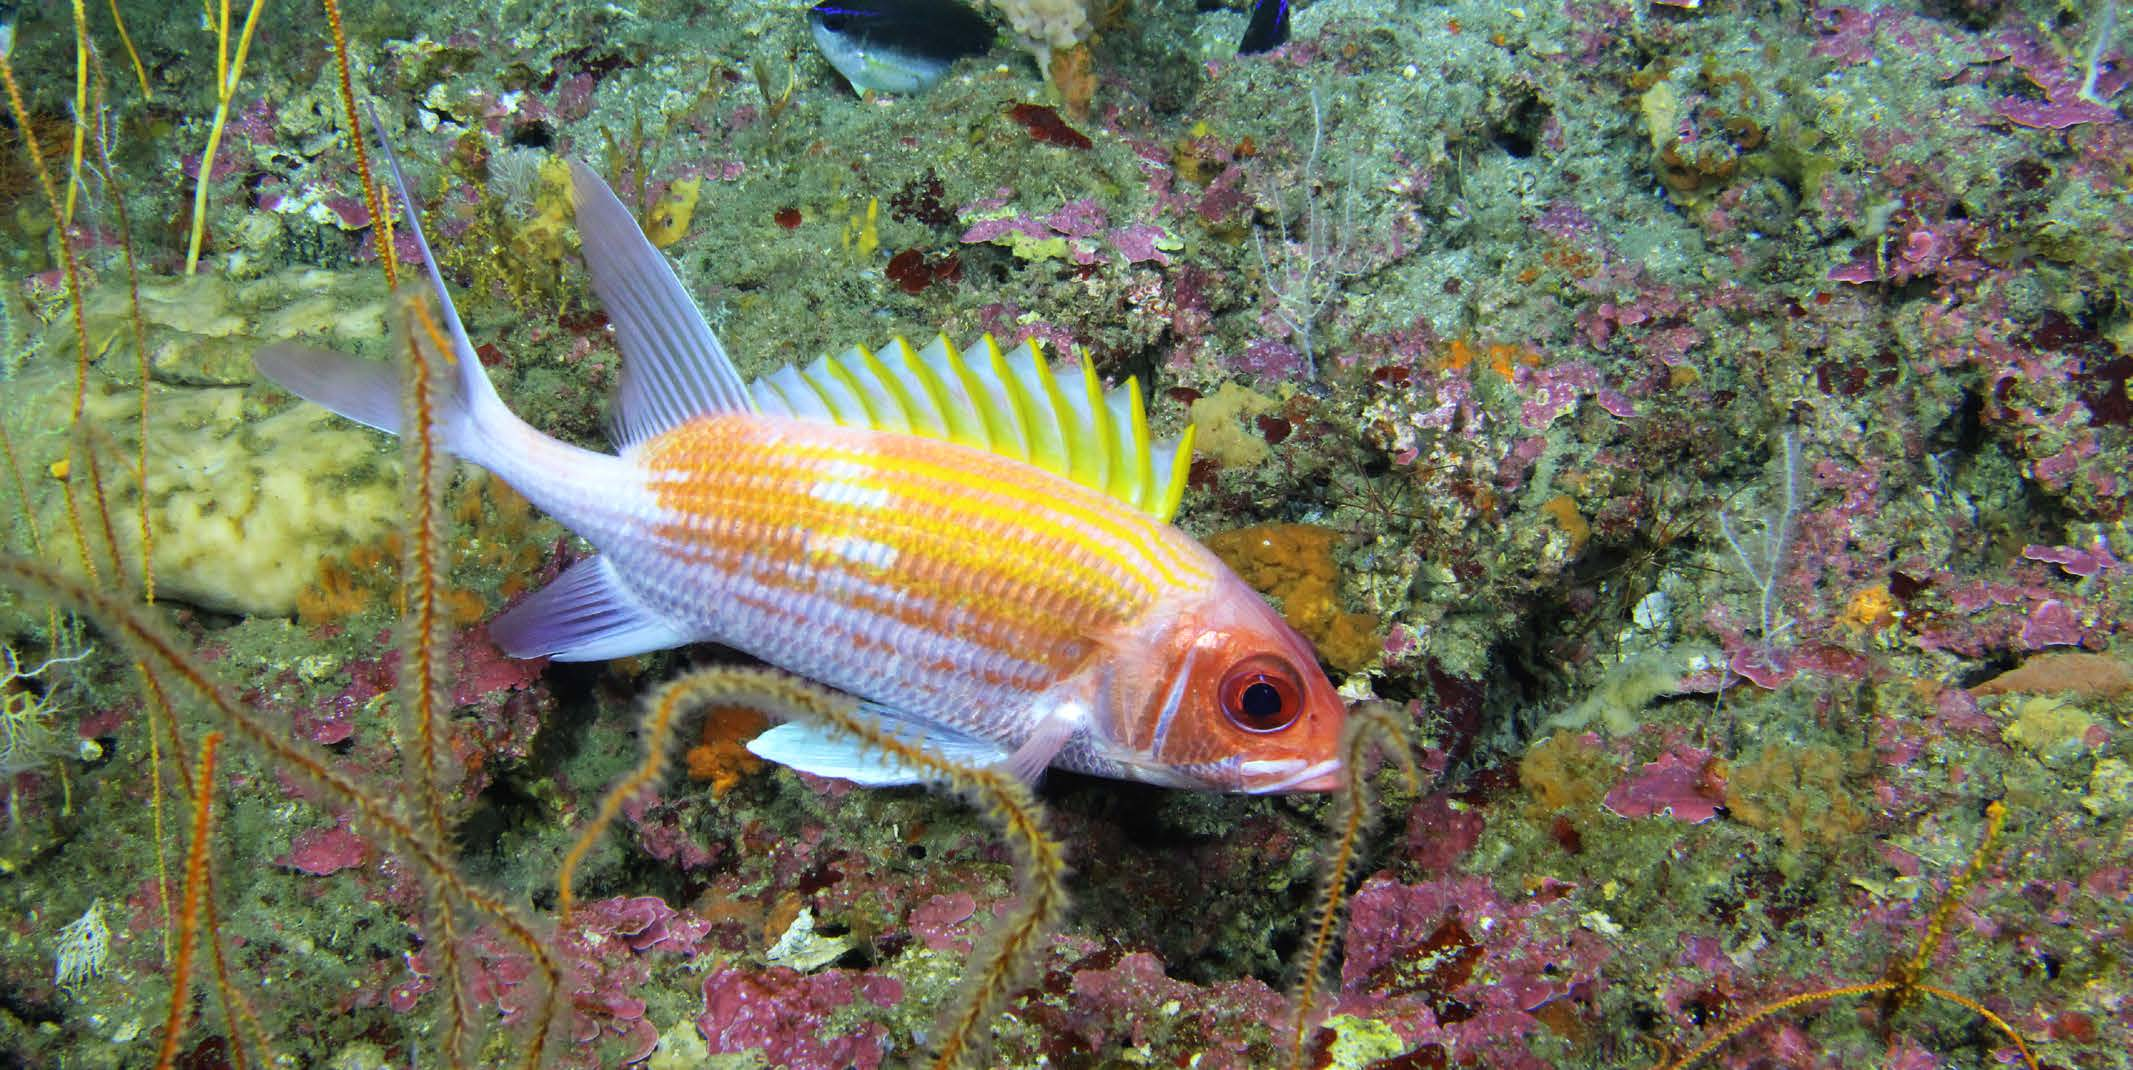 NRDA scientists studied reef fish abundance off the coast of Alabama, September 2014.